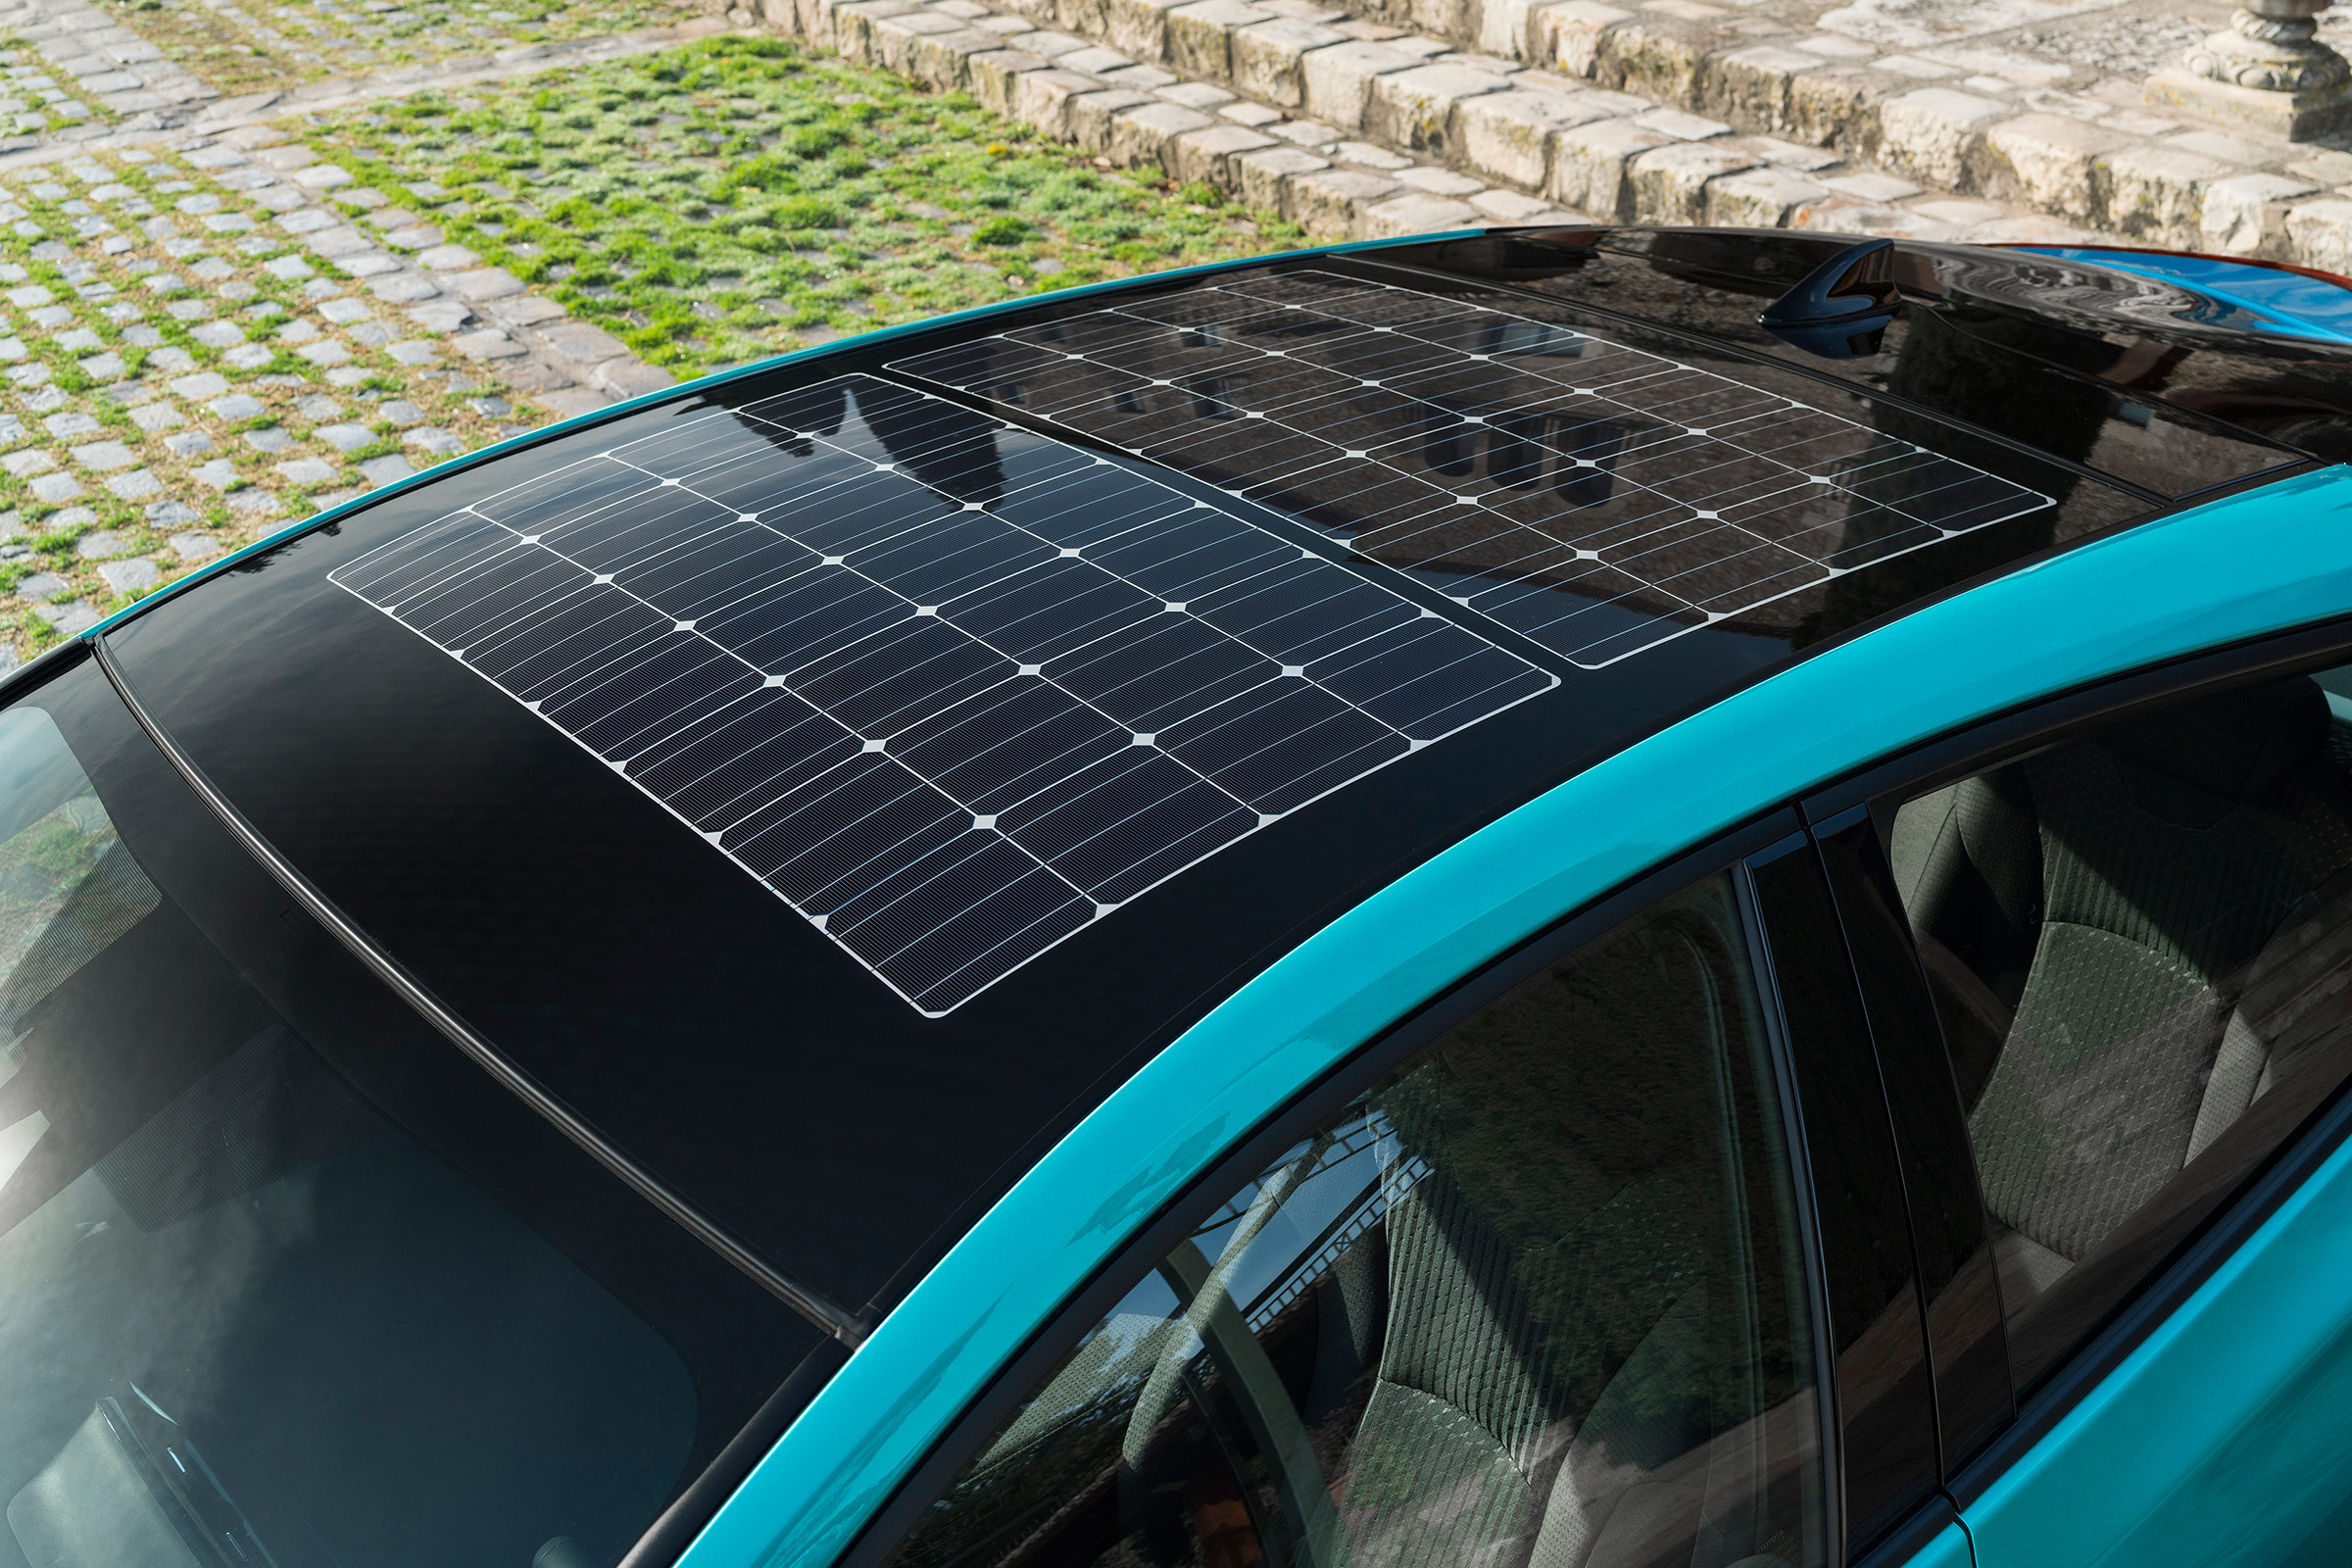 2017 Toyota Prius Blue Exterior View Solar Roof (Photo 5 of 64)